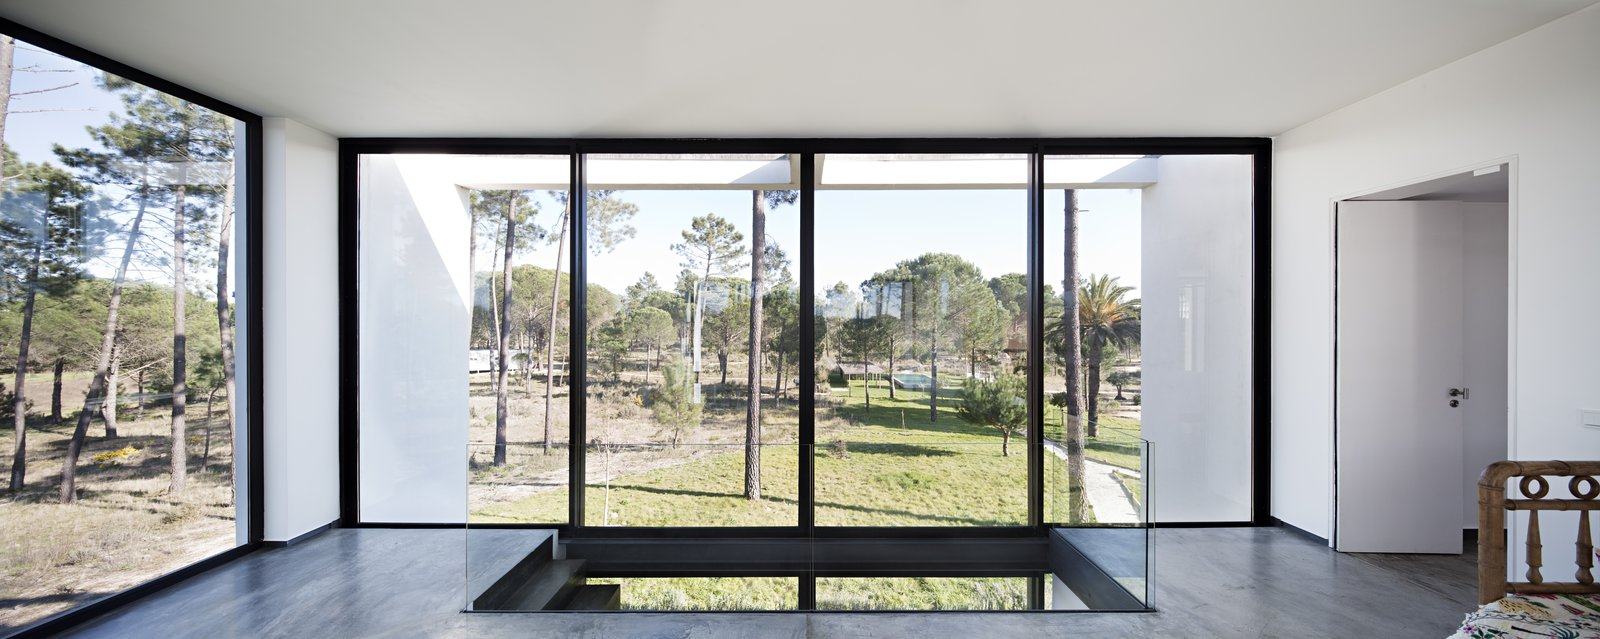 Windows and Metal  Photo 15 of 15 in Escape to a Light-Filled, Beach-Meets-Forest Retreat in Portugal